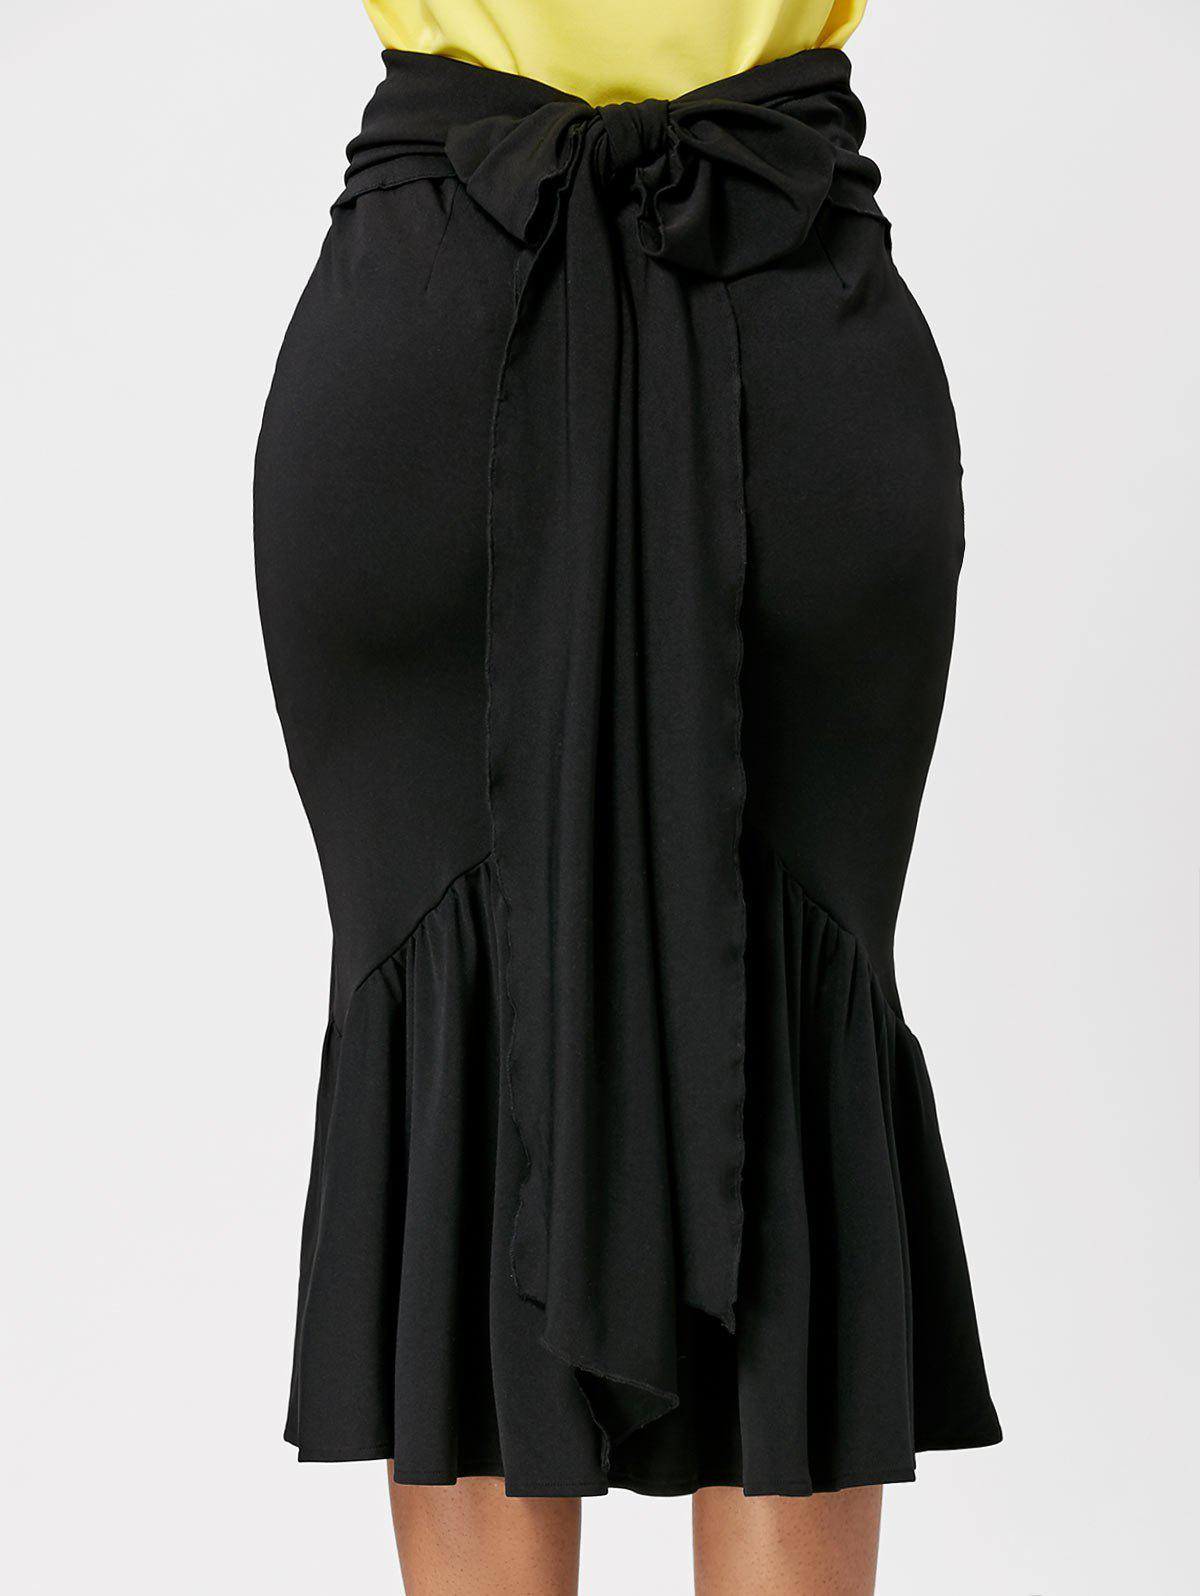 Belted Midi Mermaid Skirt - BLACK M